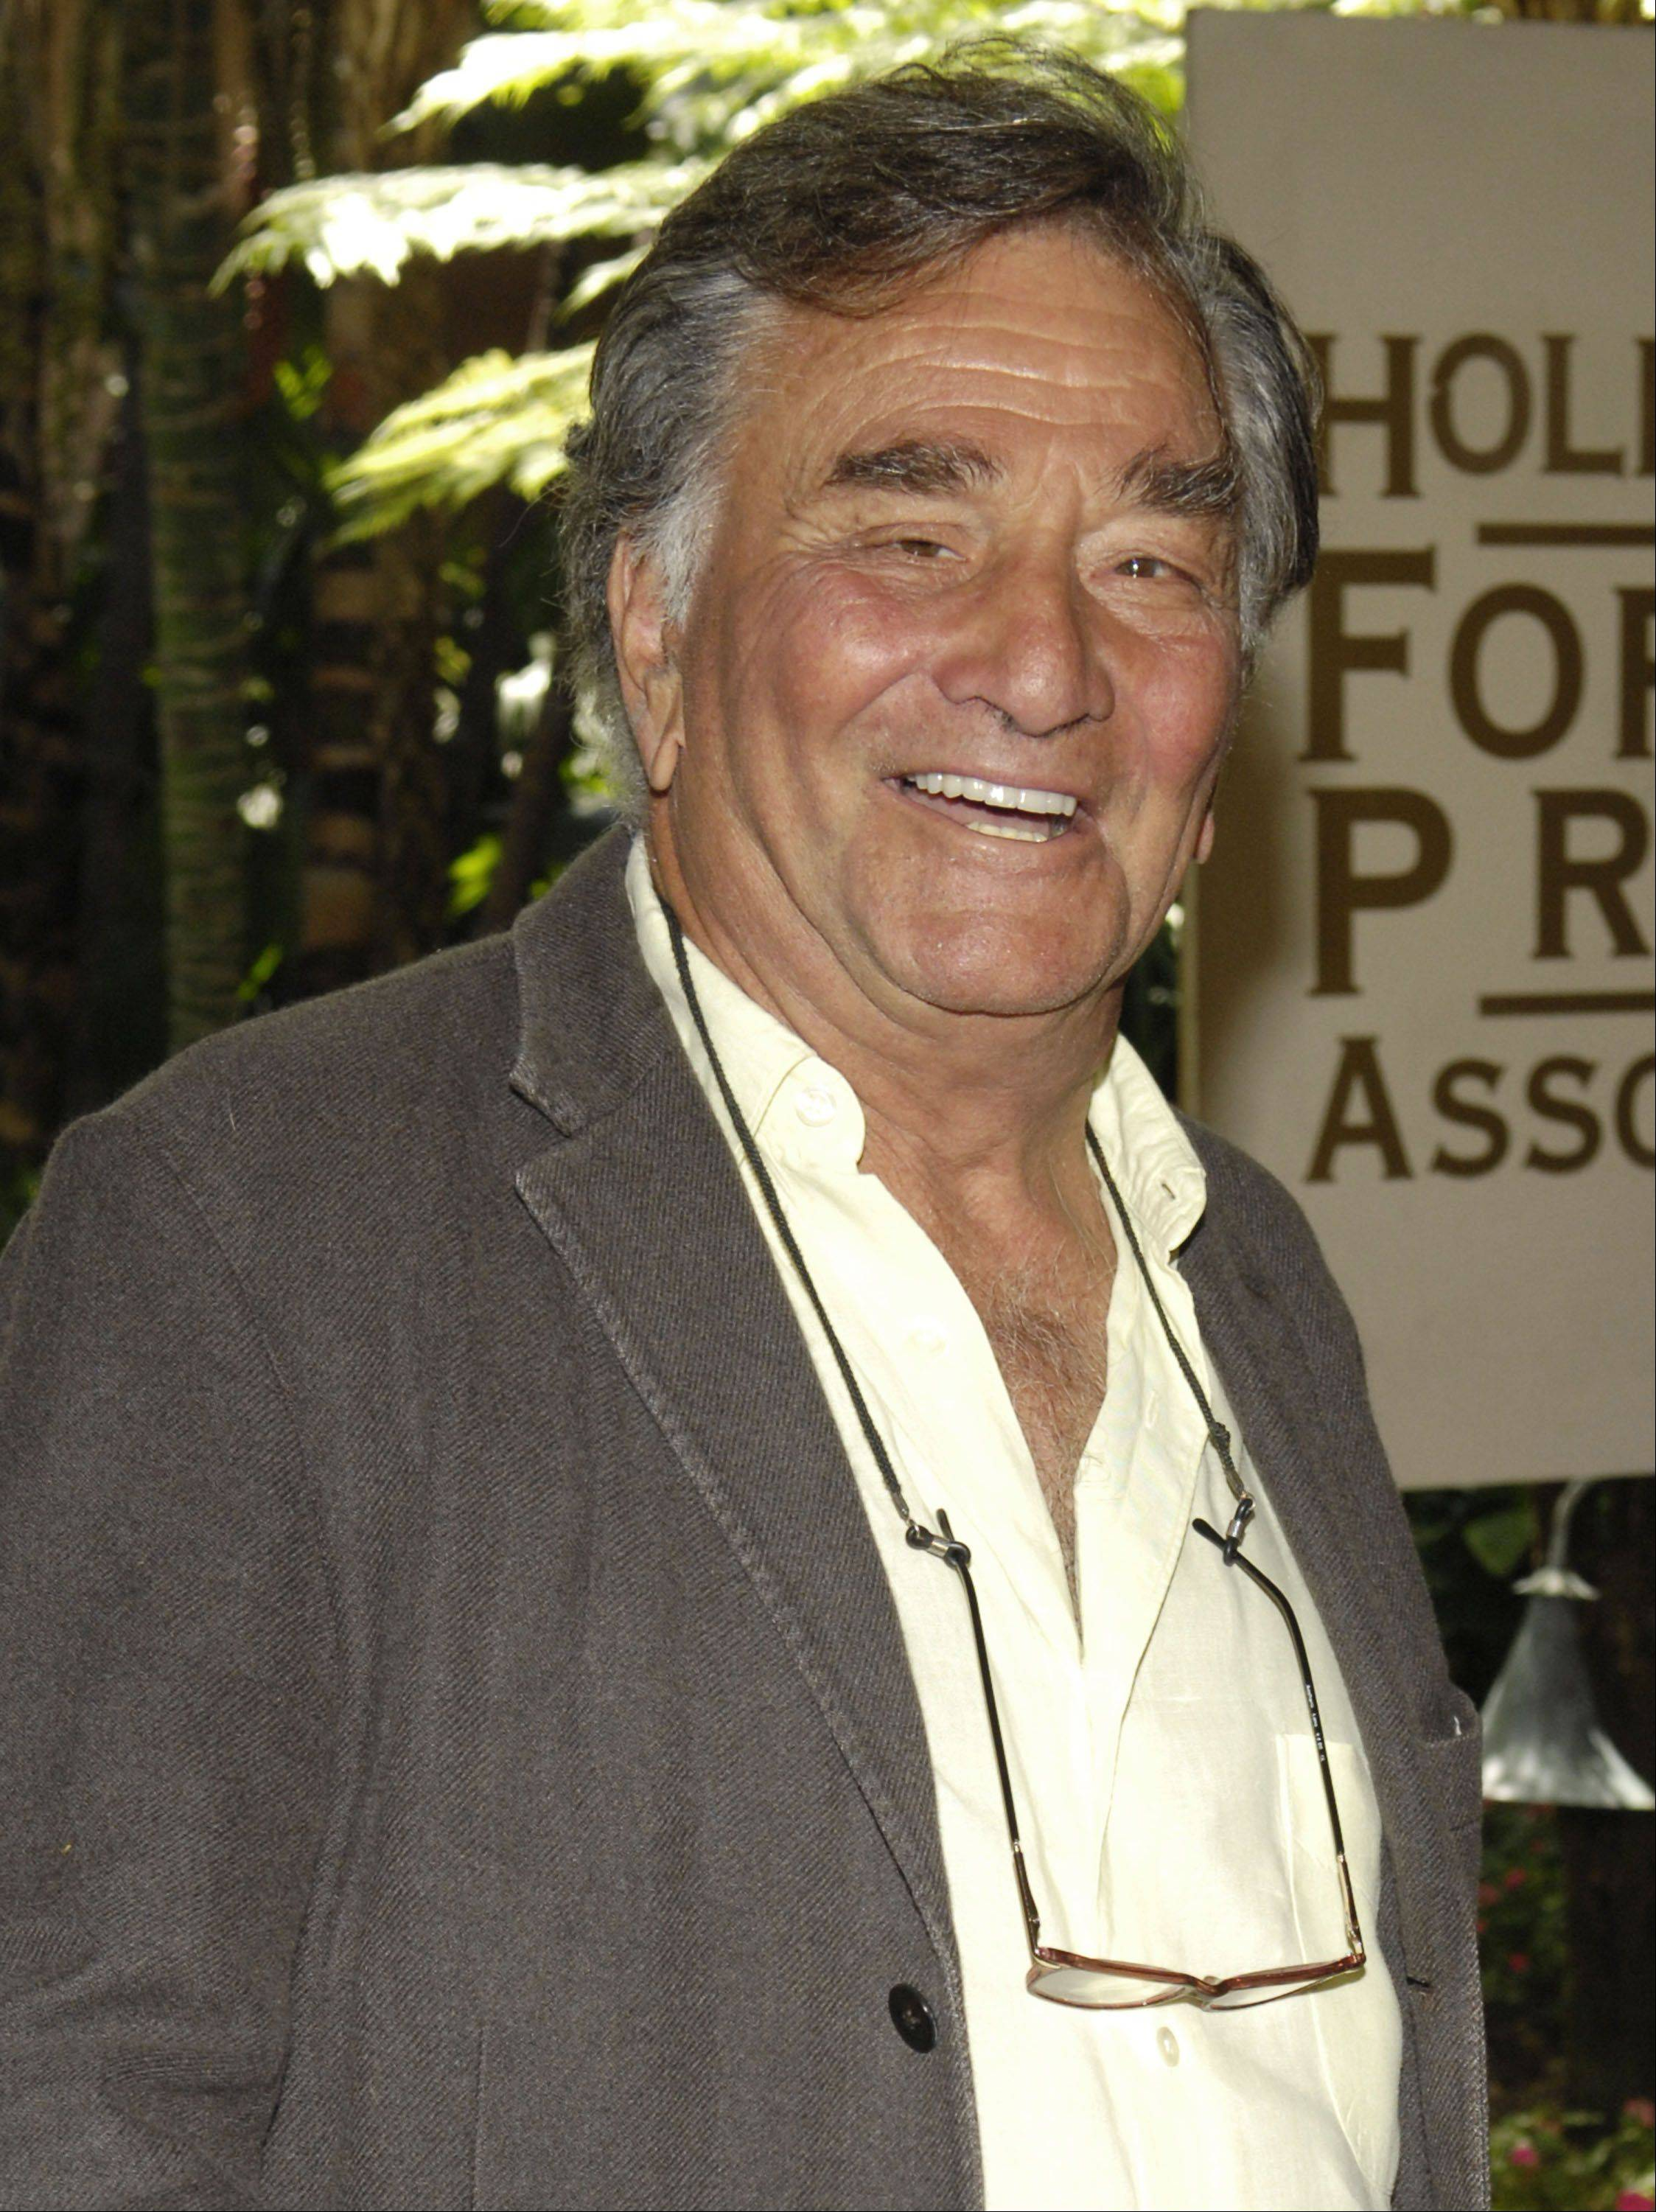 In this Aug. 9, 2007 file photo, actor Peter Falk arrives for the Hollywood Foreign Press Association's annual installation luncheon at The Beverly Hills Hotel in Beverly Hills, Calif.